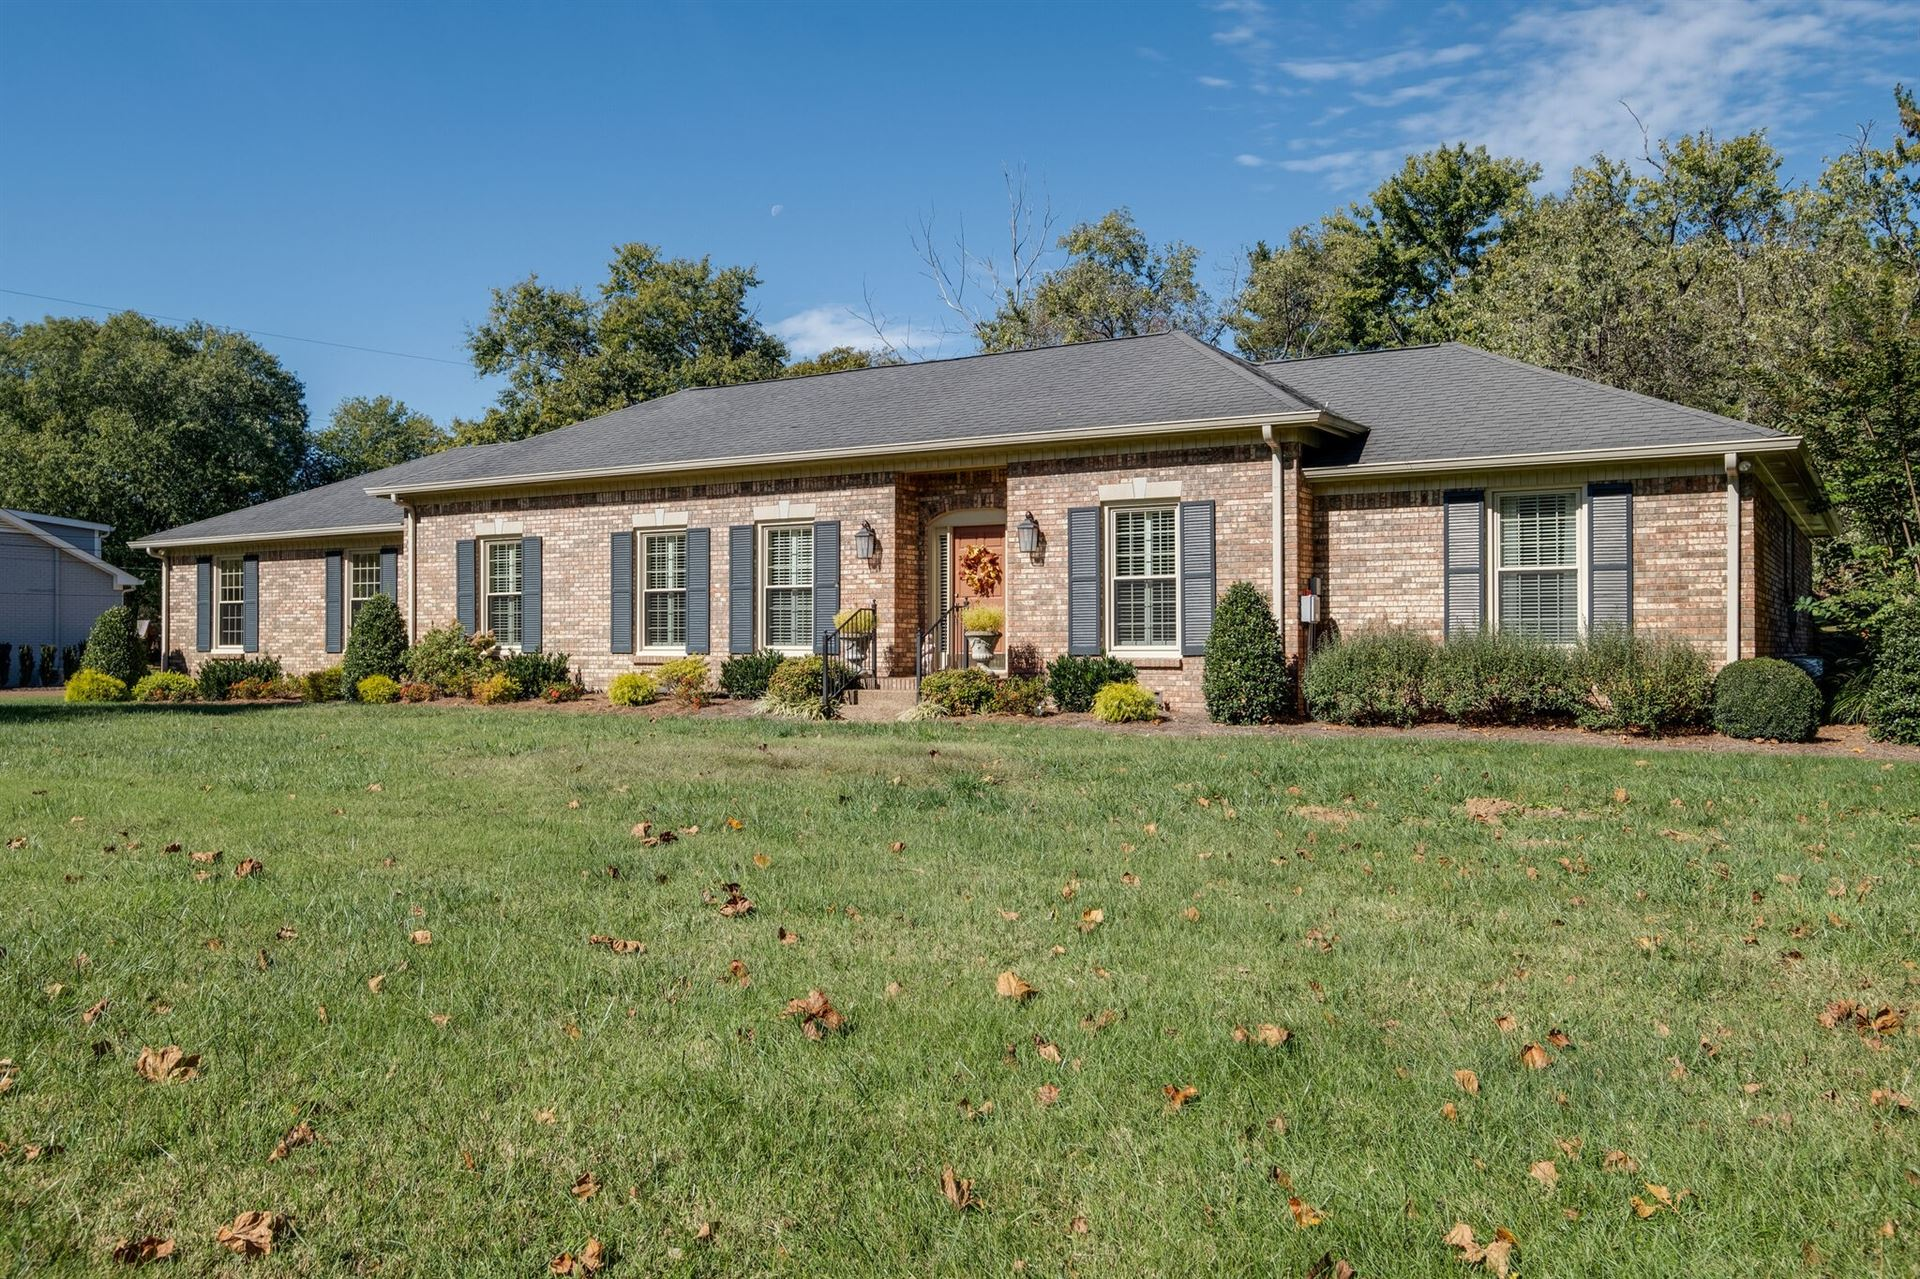 Photo of 1824 Harpeth River Dr, Brentwood, TN 37027 (MLS # 2303141)